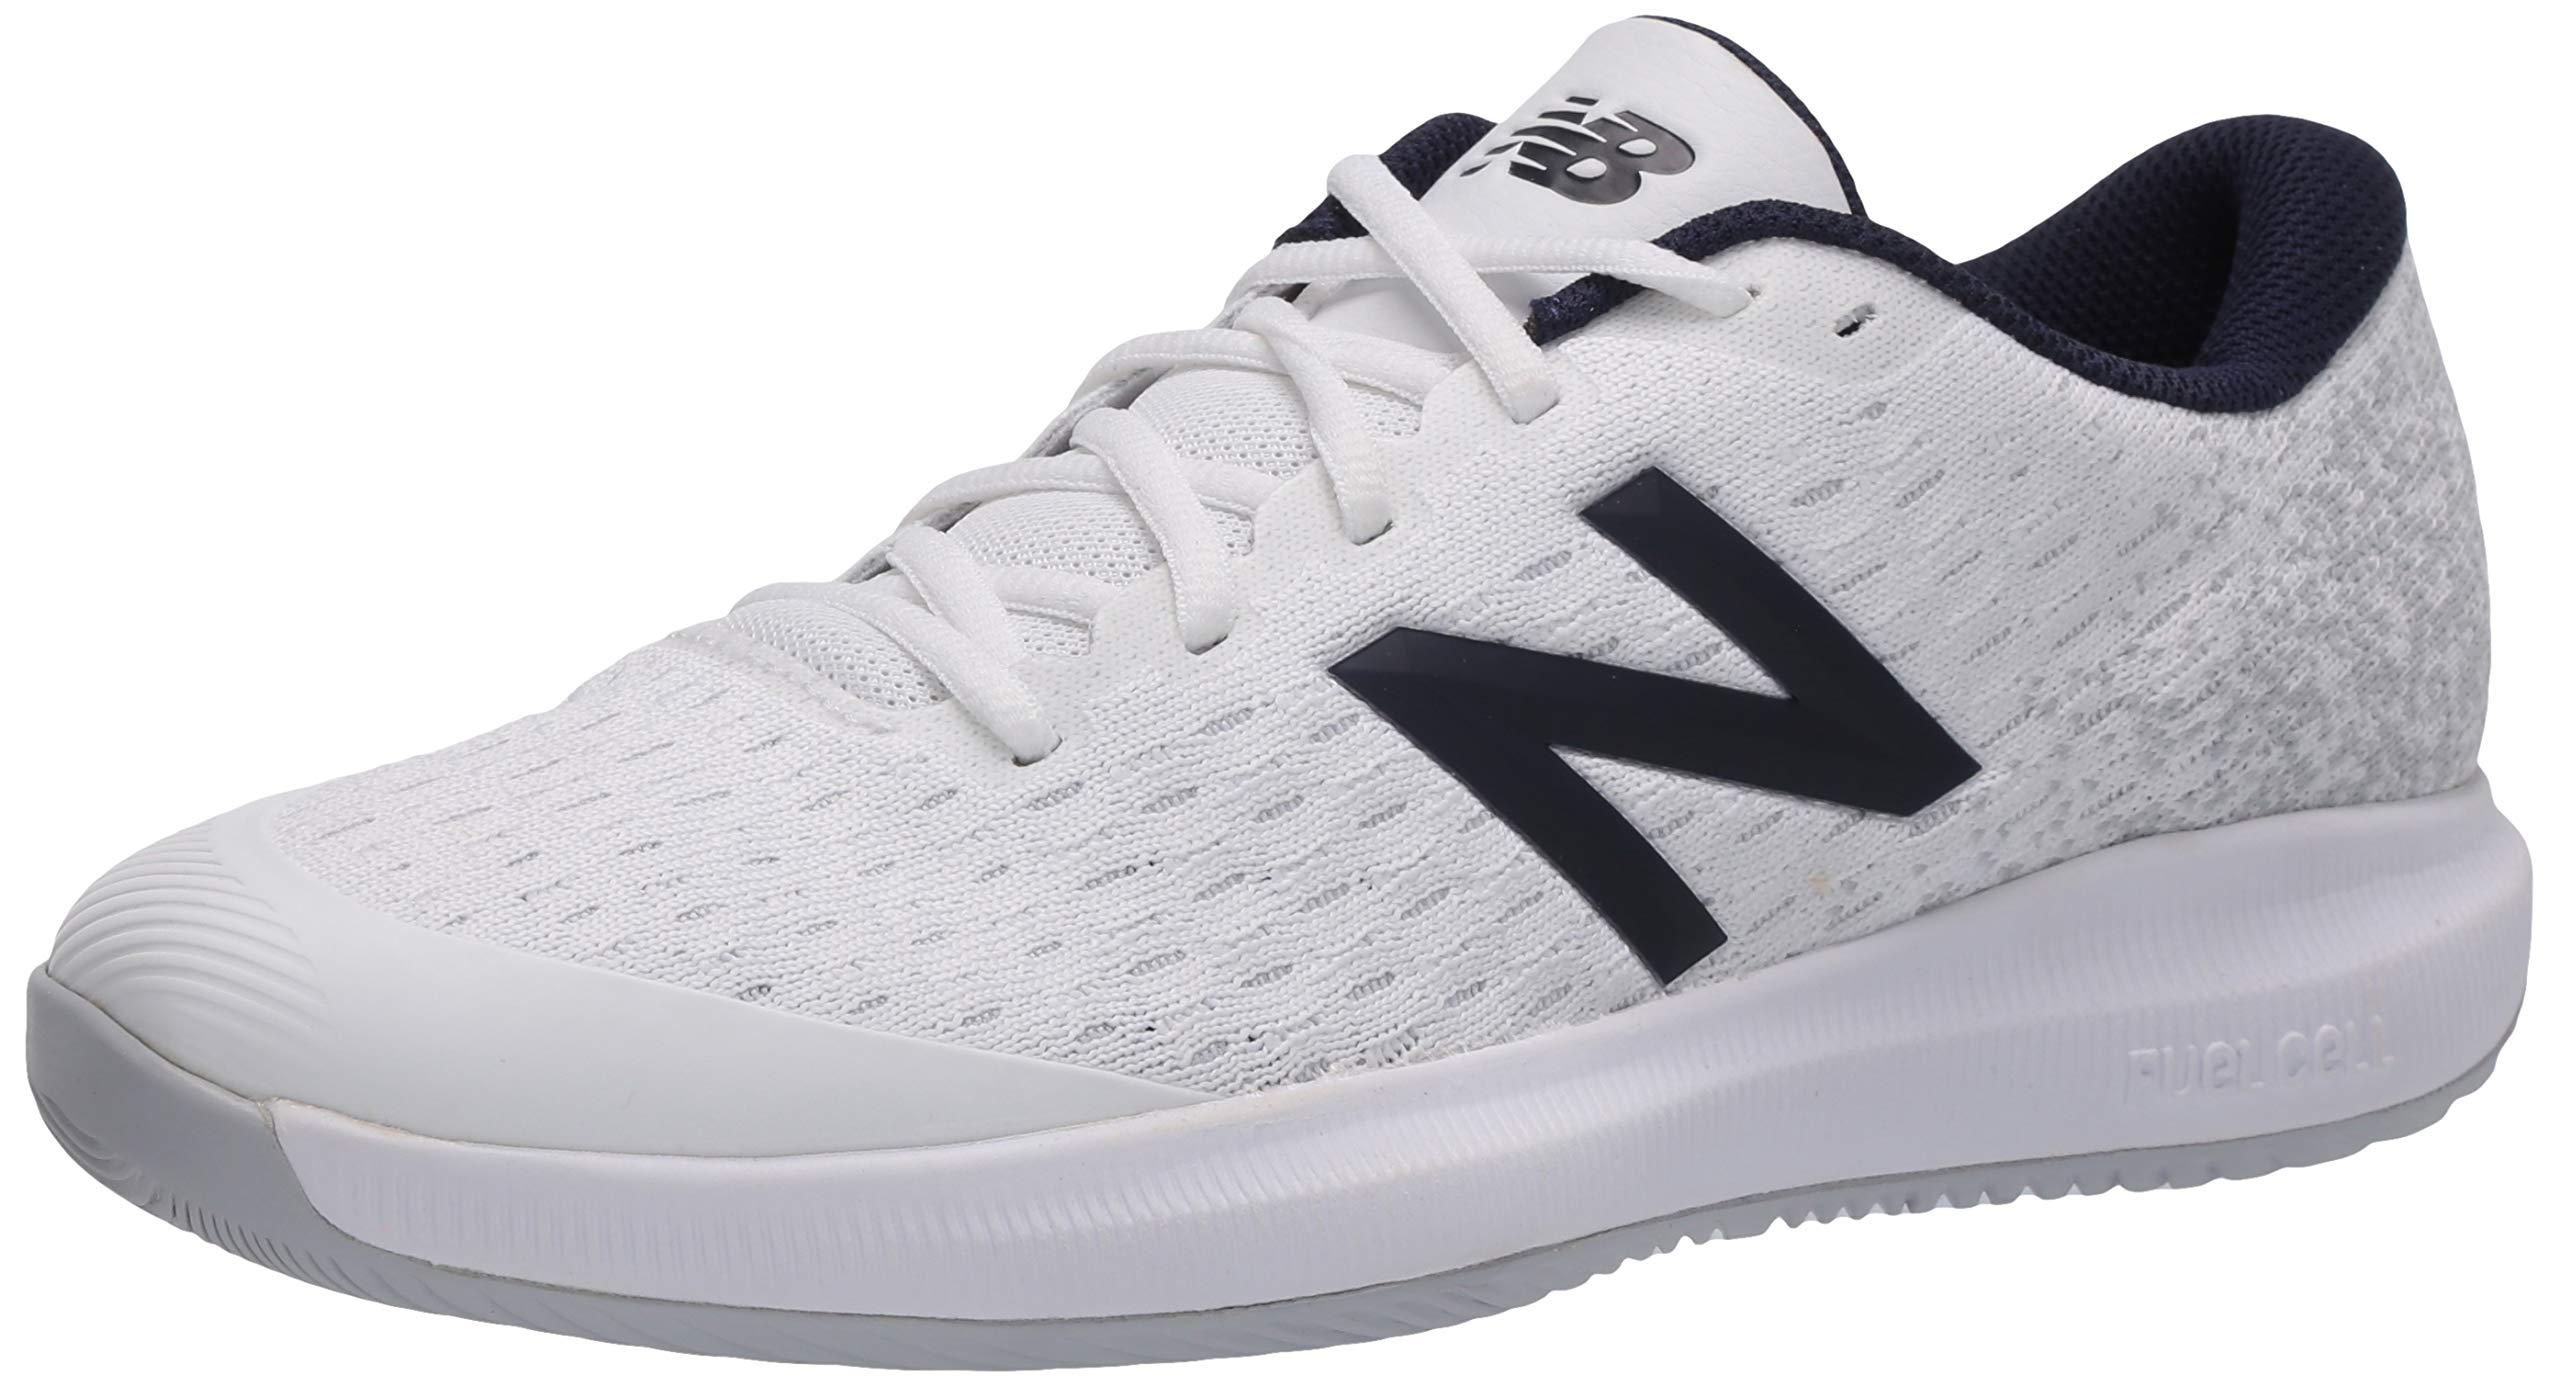 New Balance Synthetic Fuelcell 996 V4 Tennis Shoe in White/Grey ...